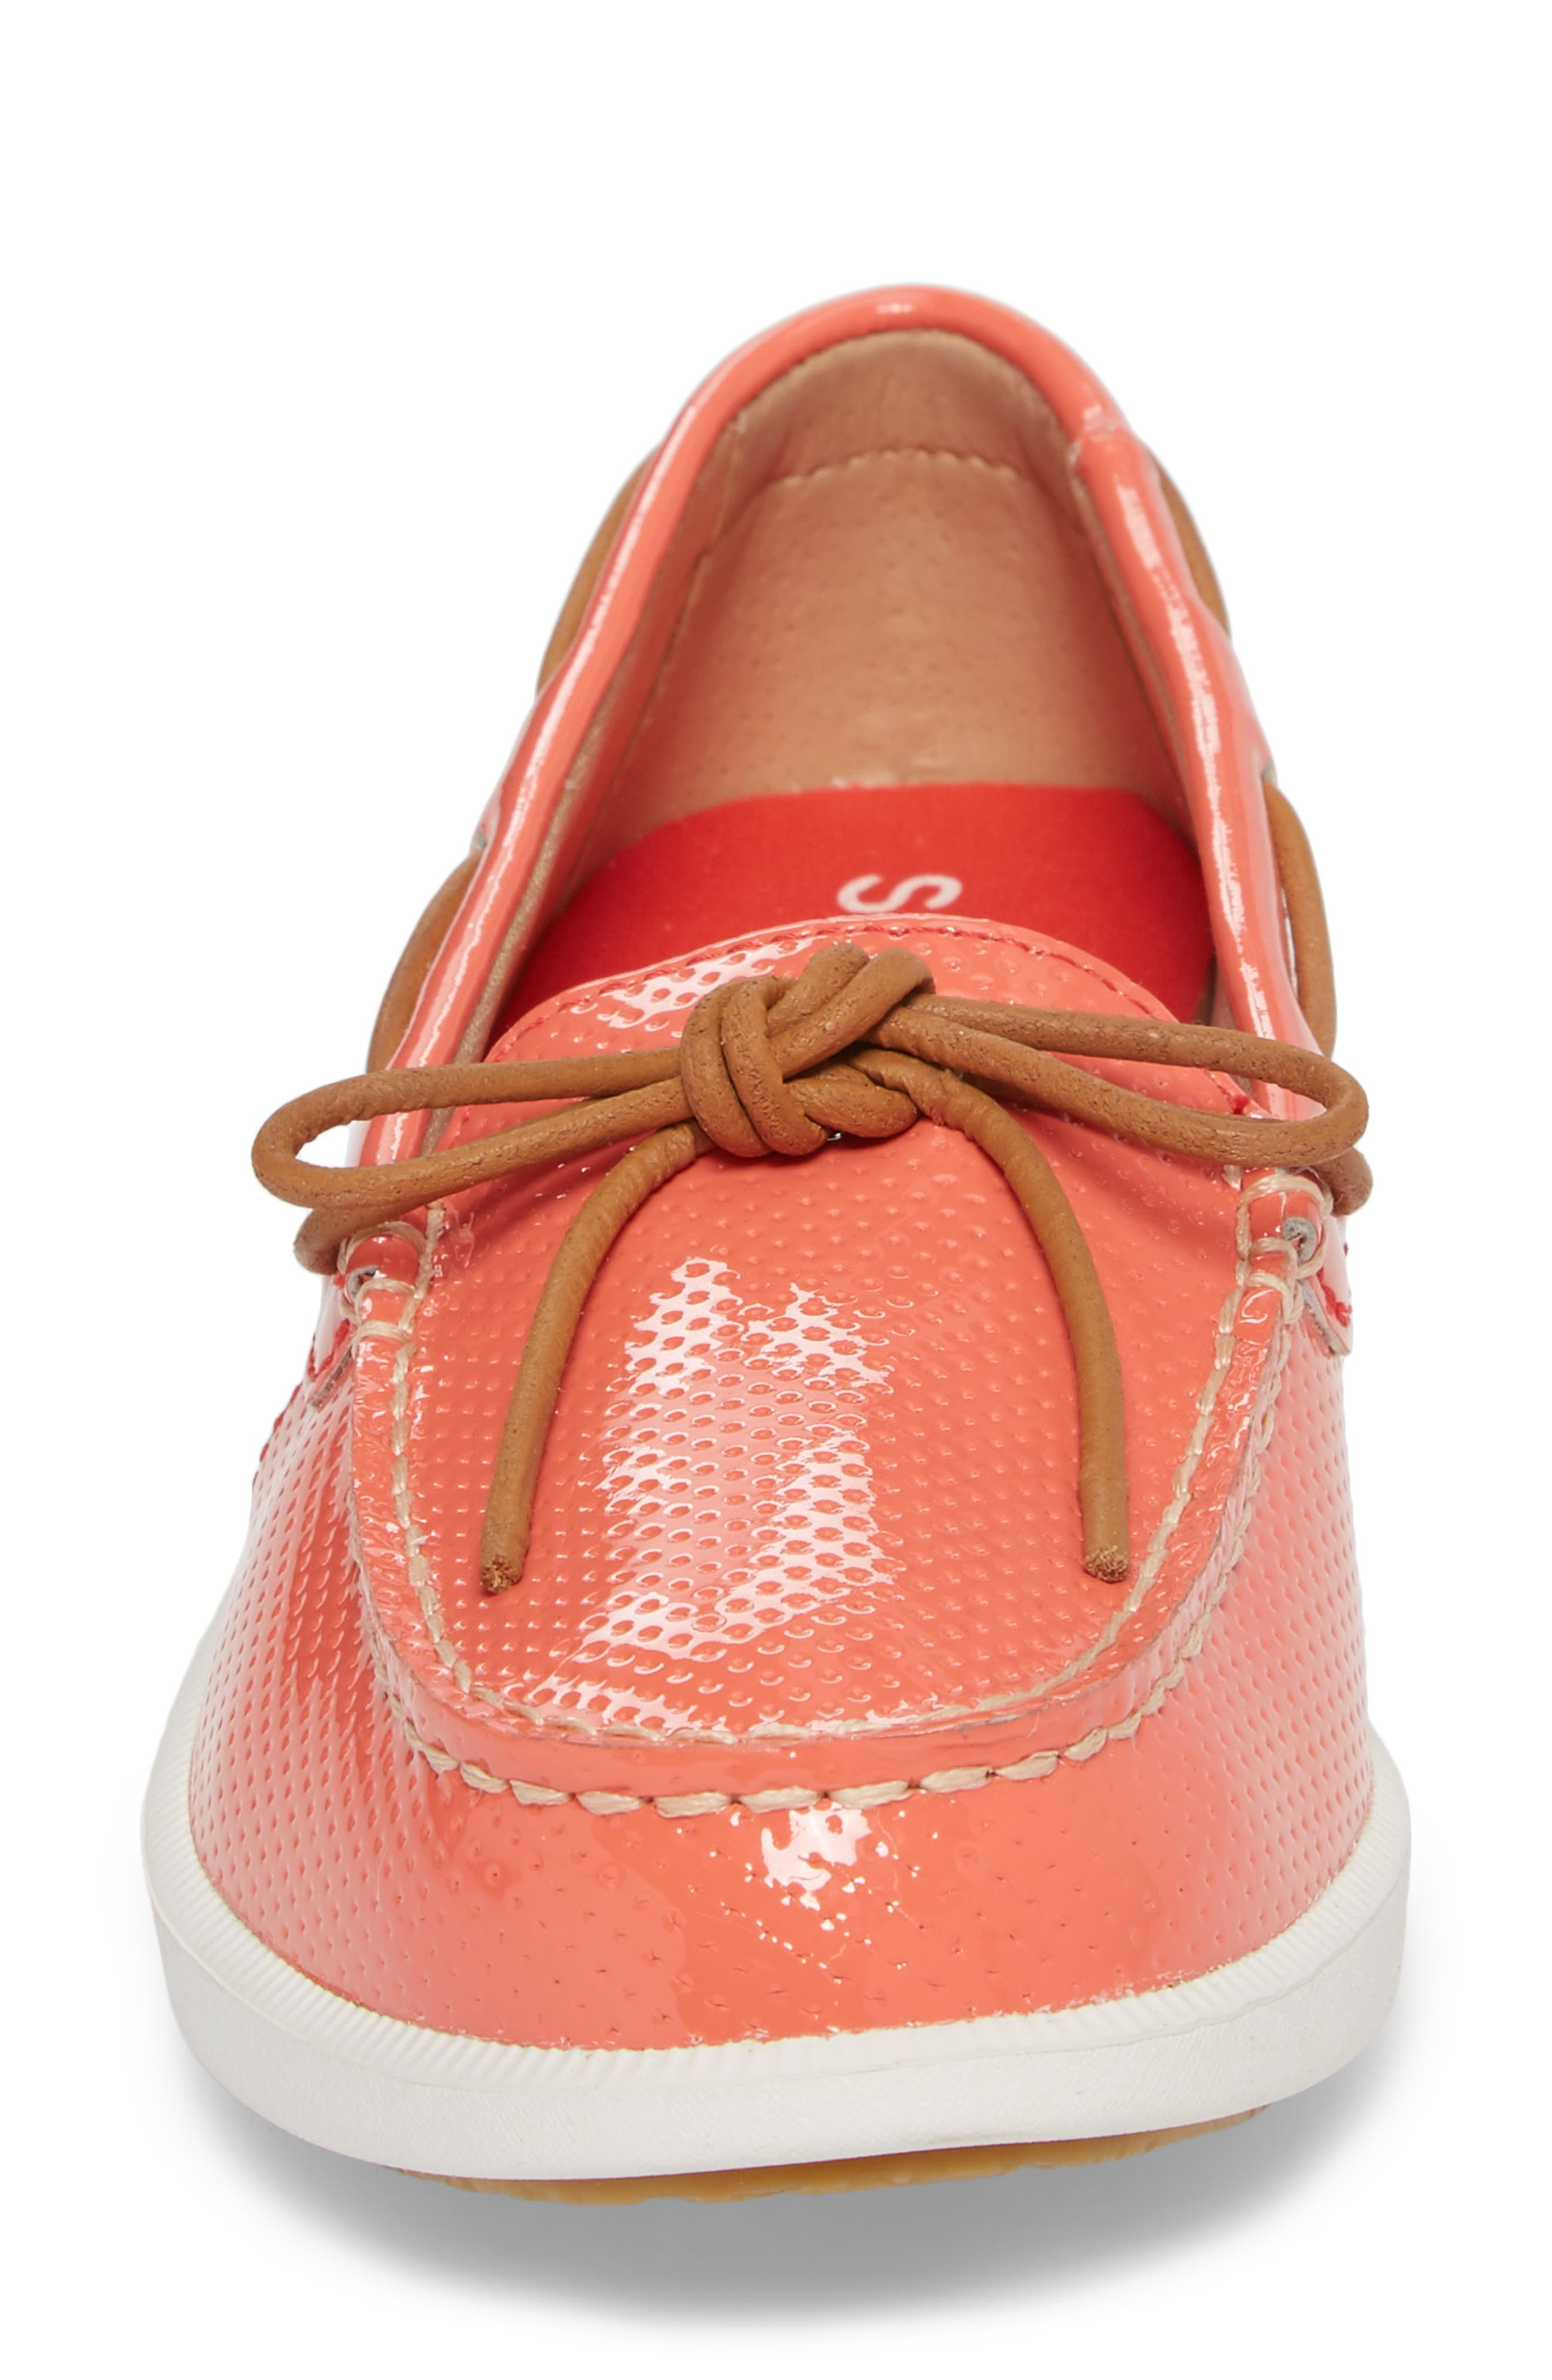 Oasis Boat Shoe,                             Alternate thumbnail 4, color,                             Coral Patent Leather